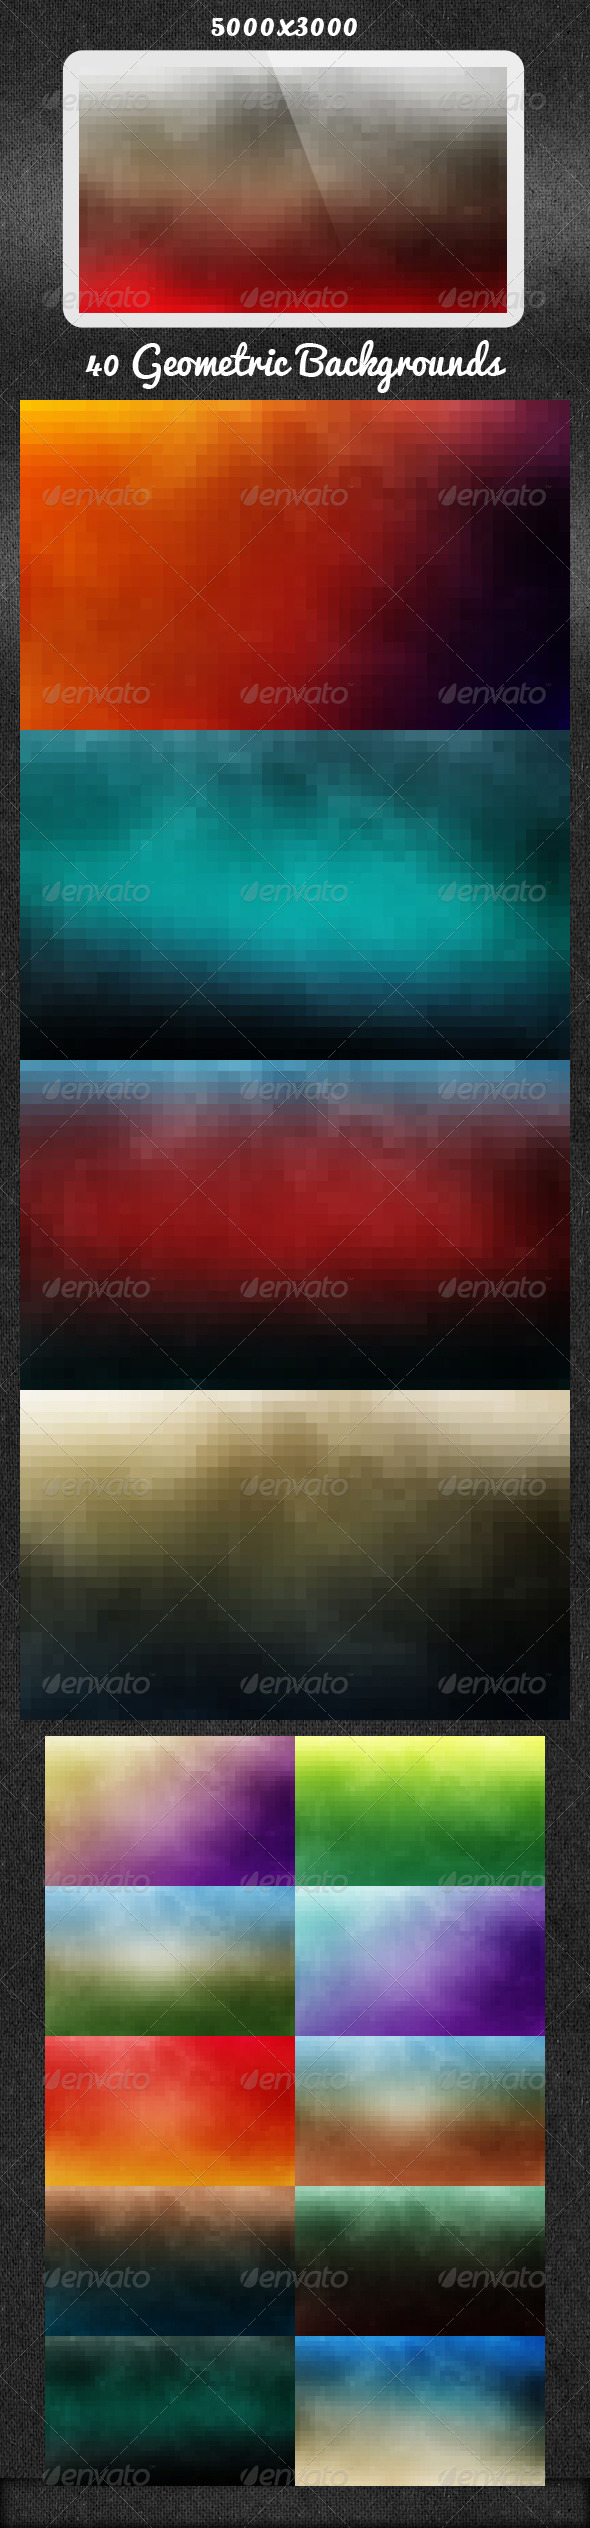 GraphicRiver 40 Geometric Backgrounds 5372875